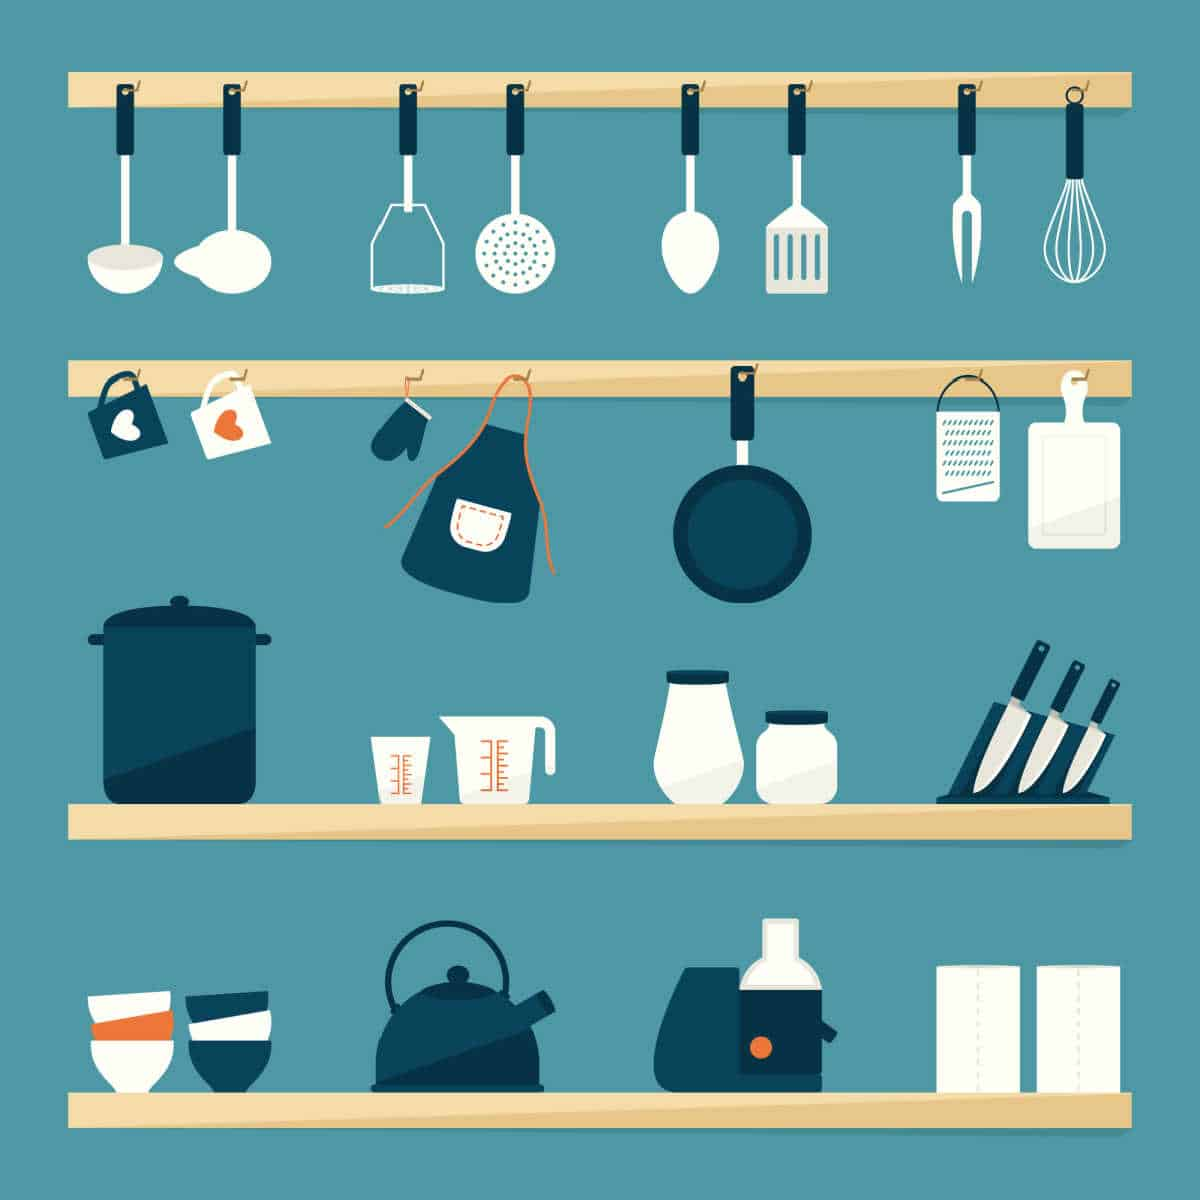 Illustration of kitchen shelves to highlight how many ounces in a quart.